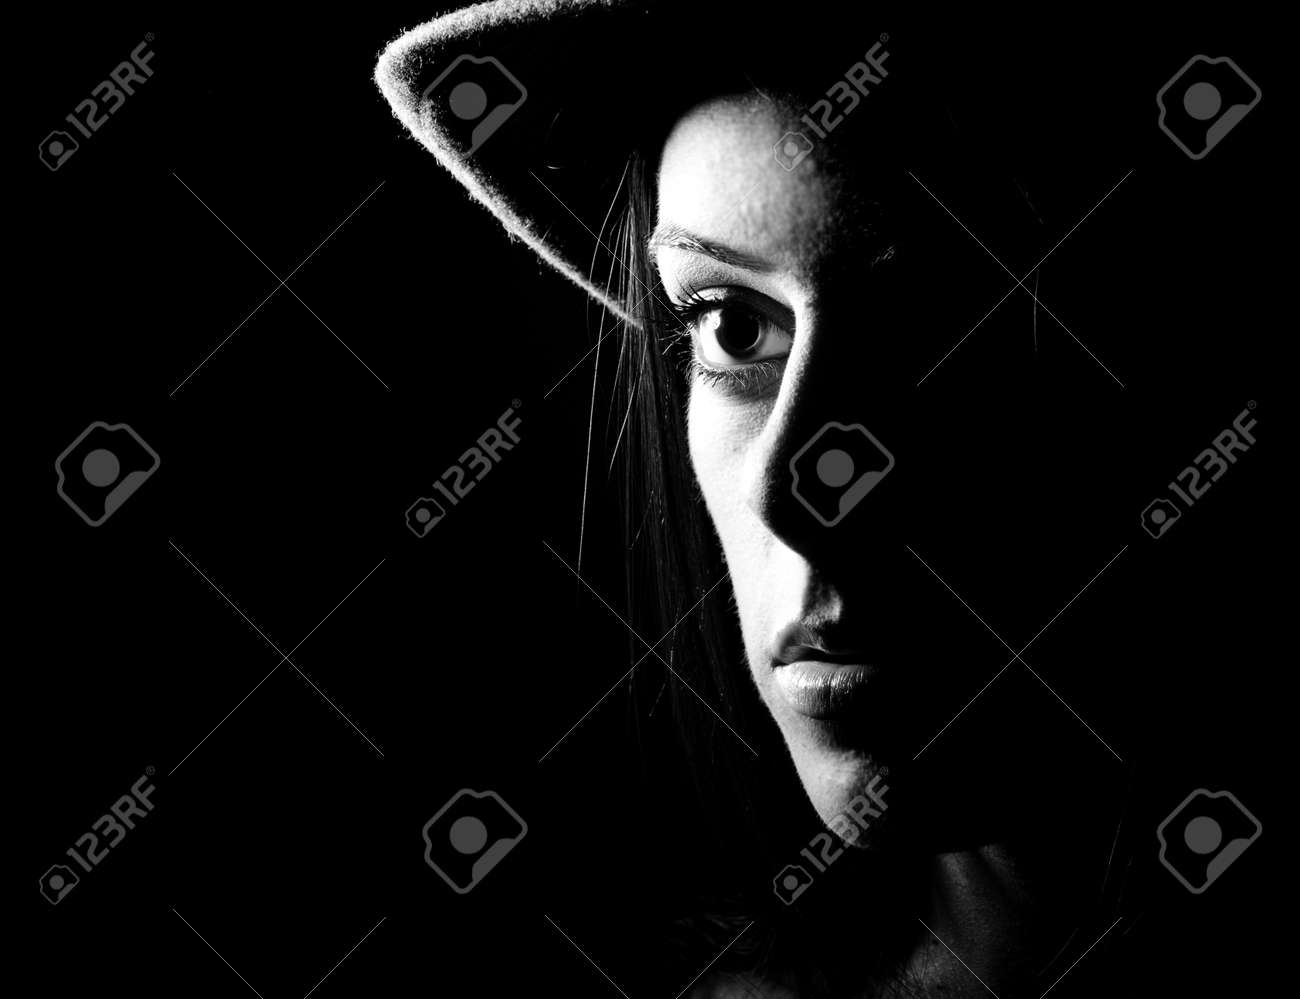 Stock photo women black and white face portrait closeup